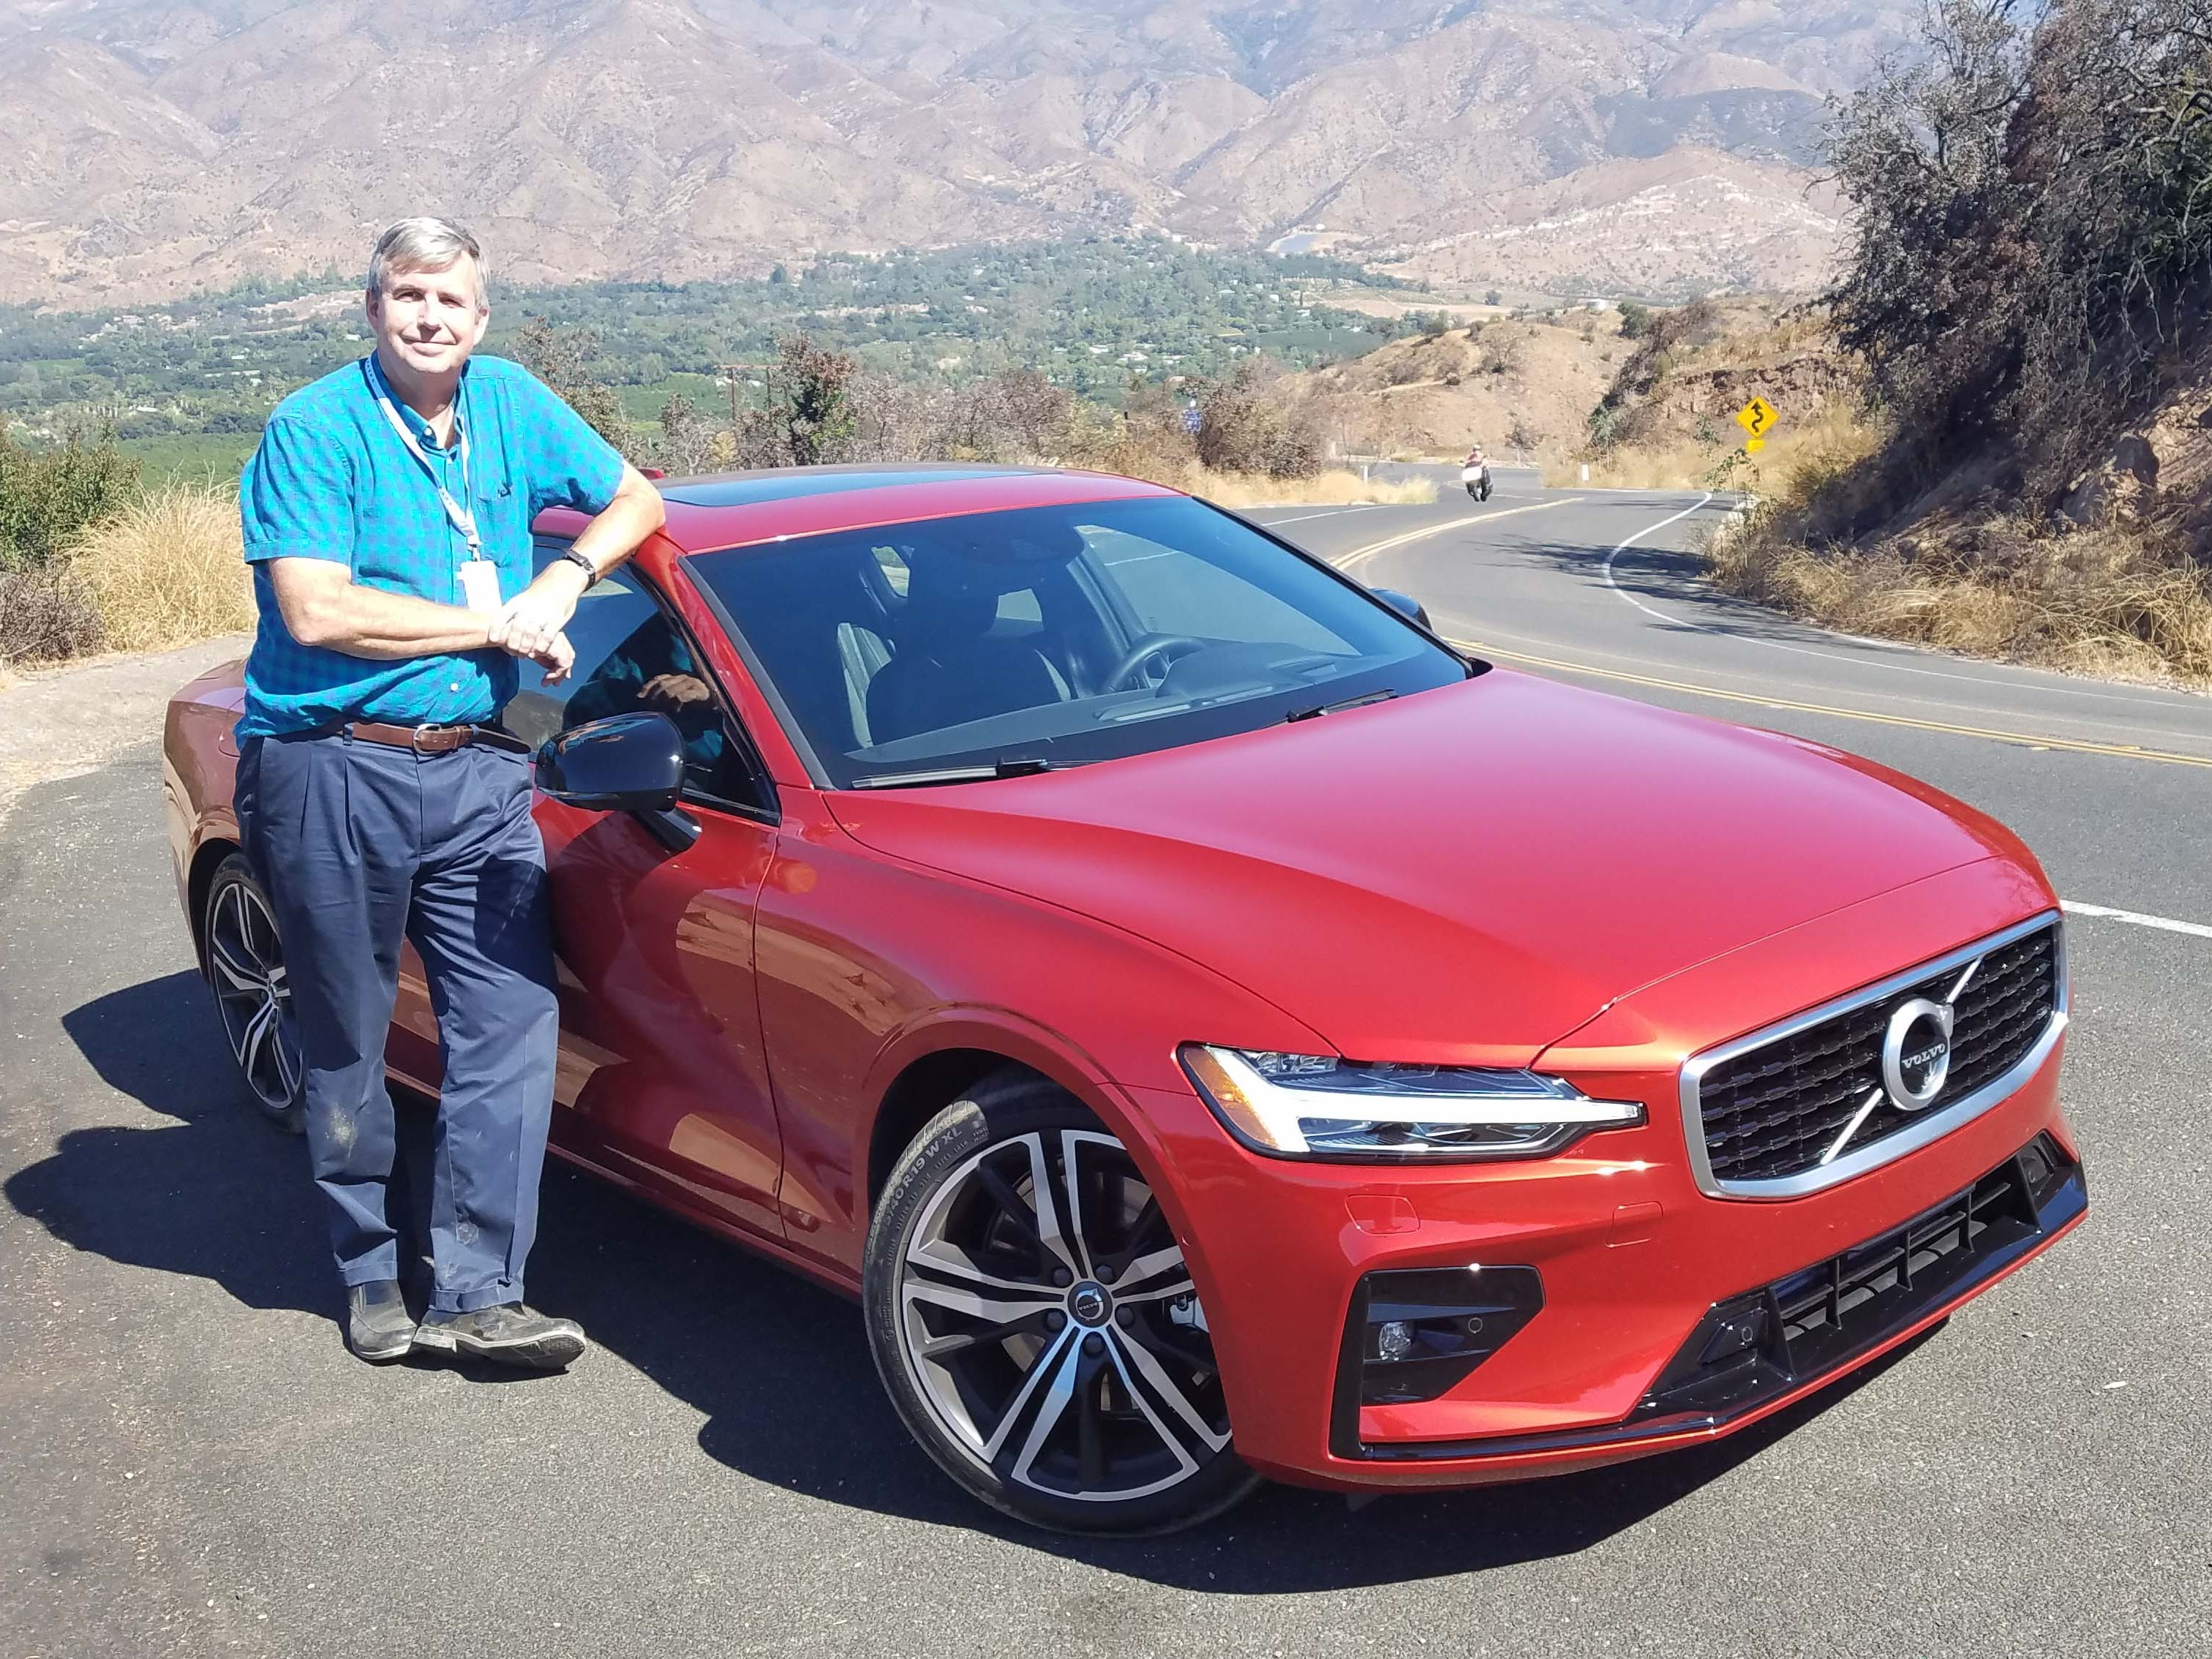 Detroit News auto critic Henry Payne flogged the 2019 Volvo S60 through the twisty roads of northern L.A.